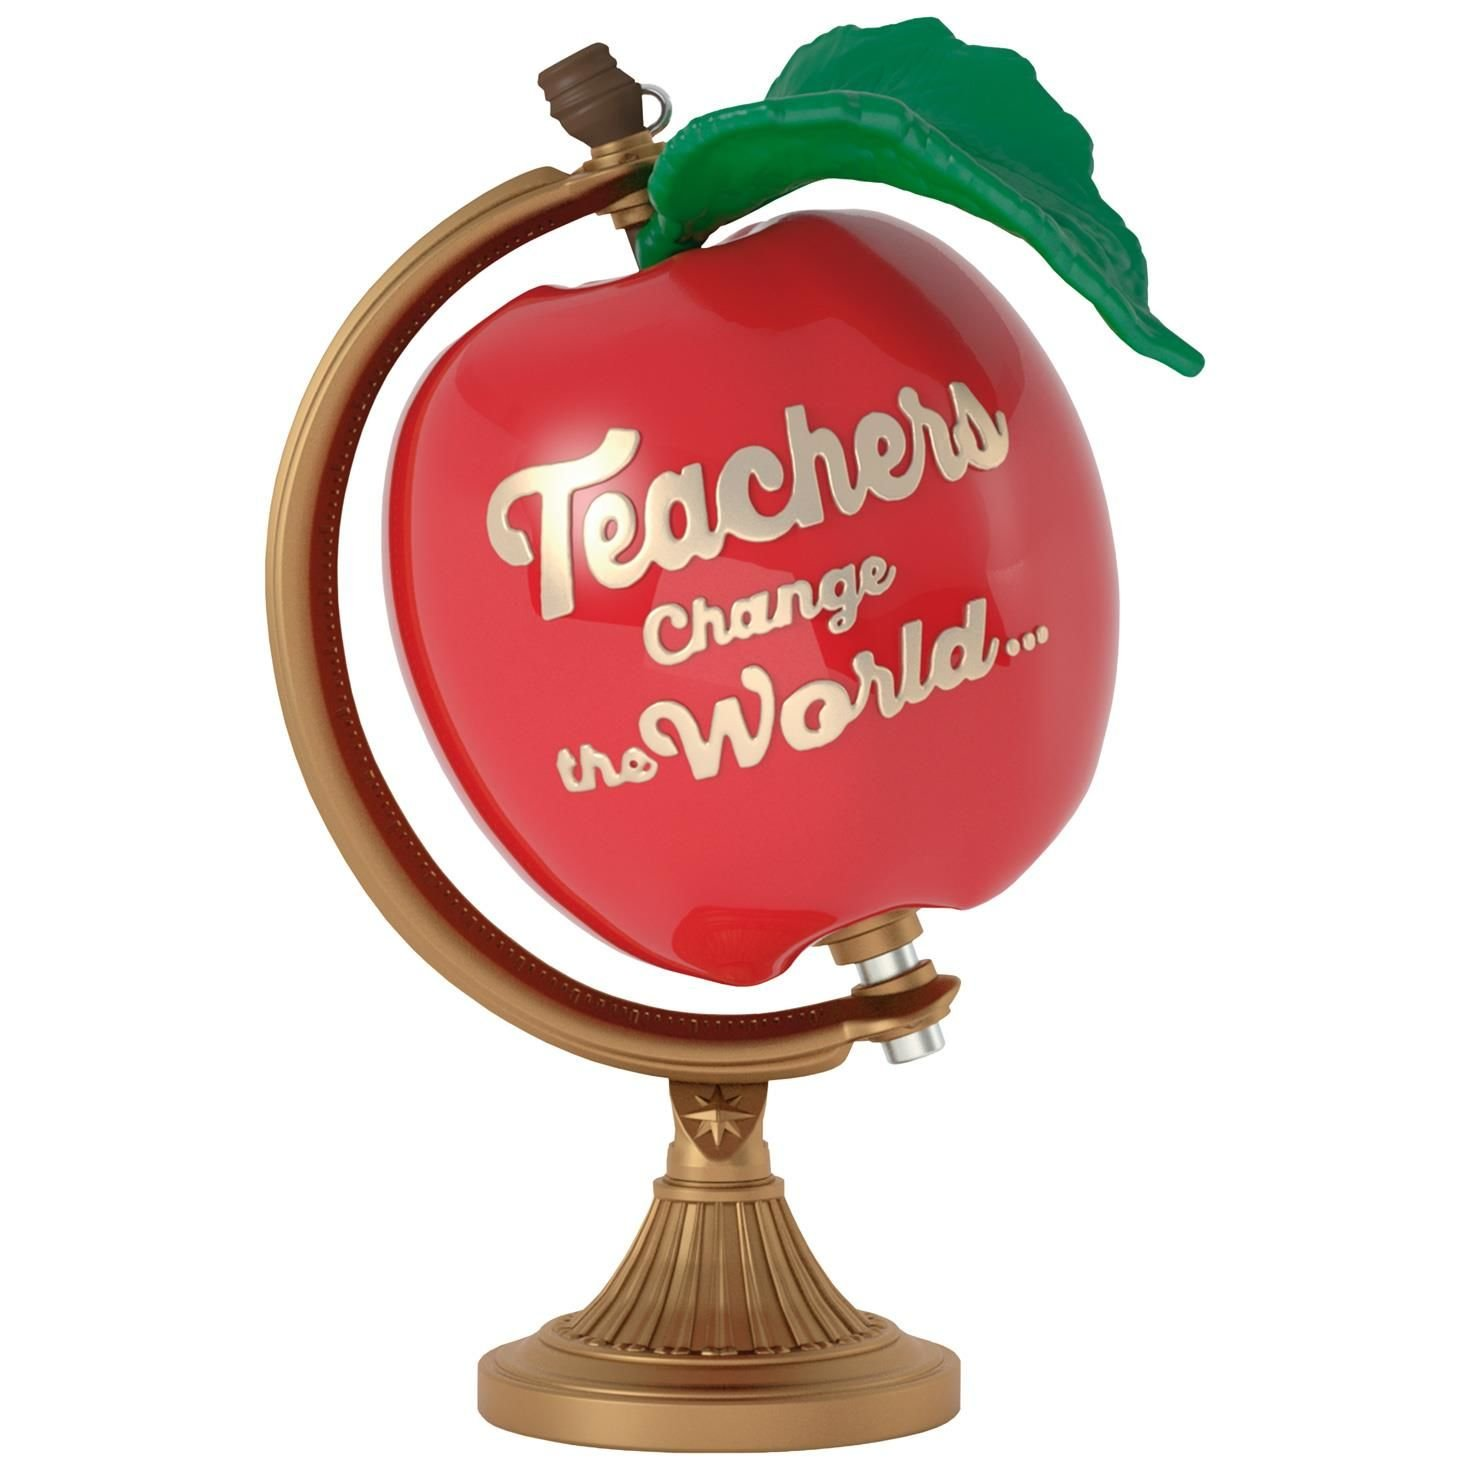 Teachers Change the World Apple Globe Ornament Occupations